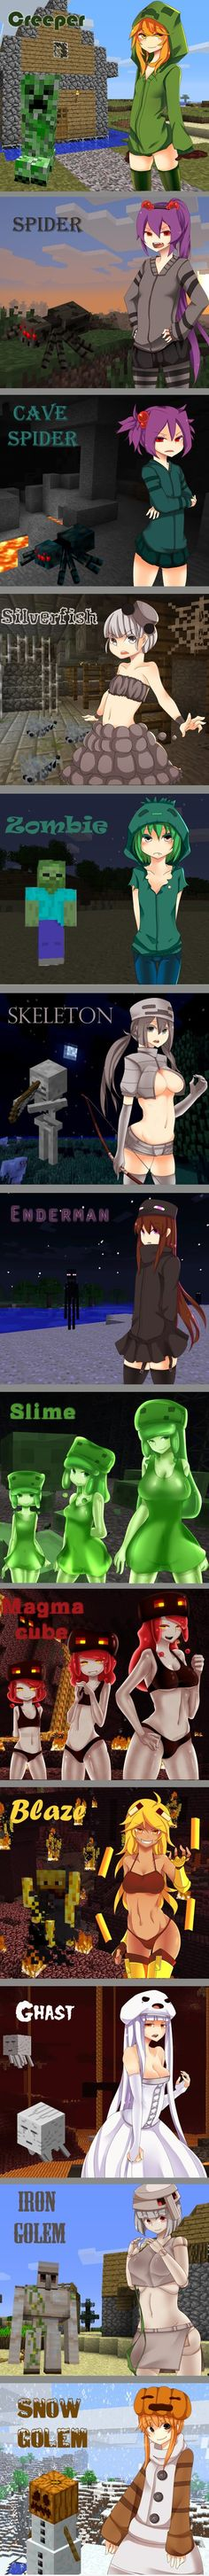 Minecraft monsters into anime girls » ONLY PICS